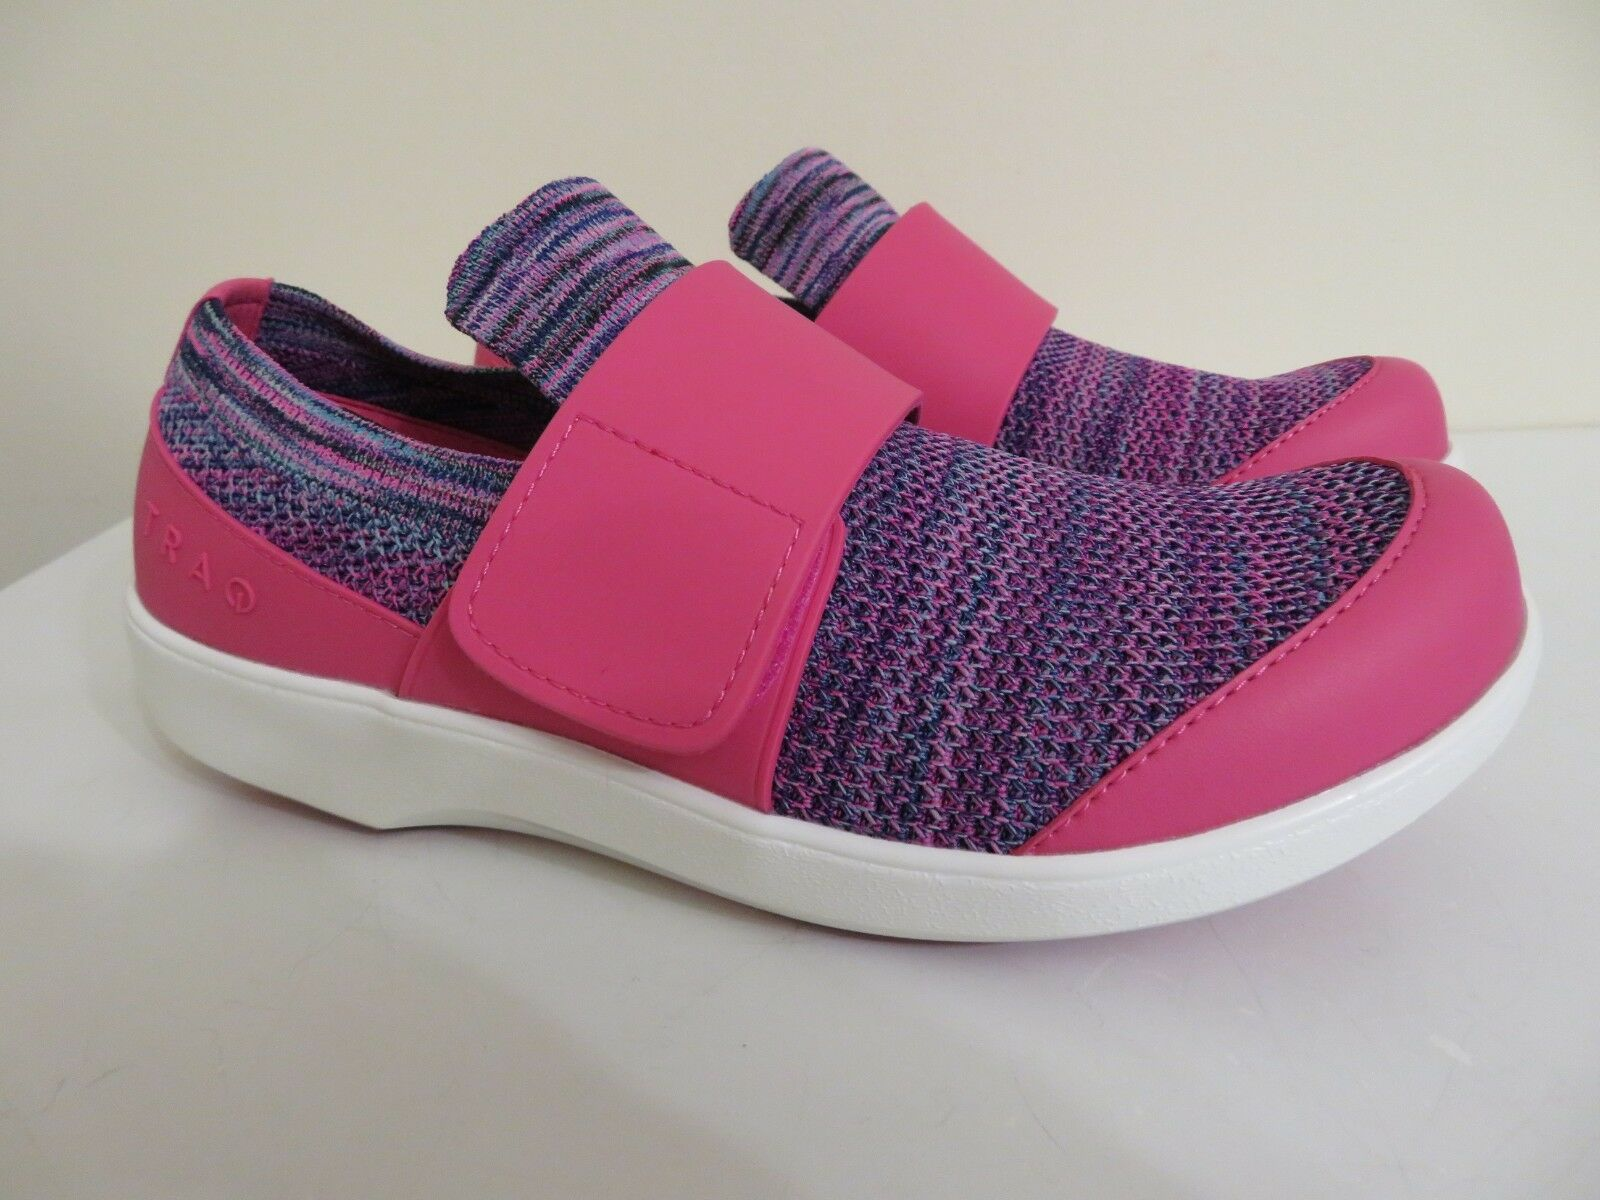 ALEGRIA TRAQ SLIP ON Schuhe SNEAKERS W W W CROSS STRAP QWIK PINK 39 FITS US 9 TO 9.5 7c8afe